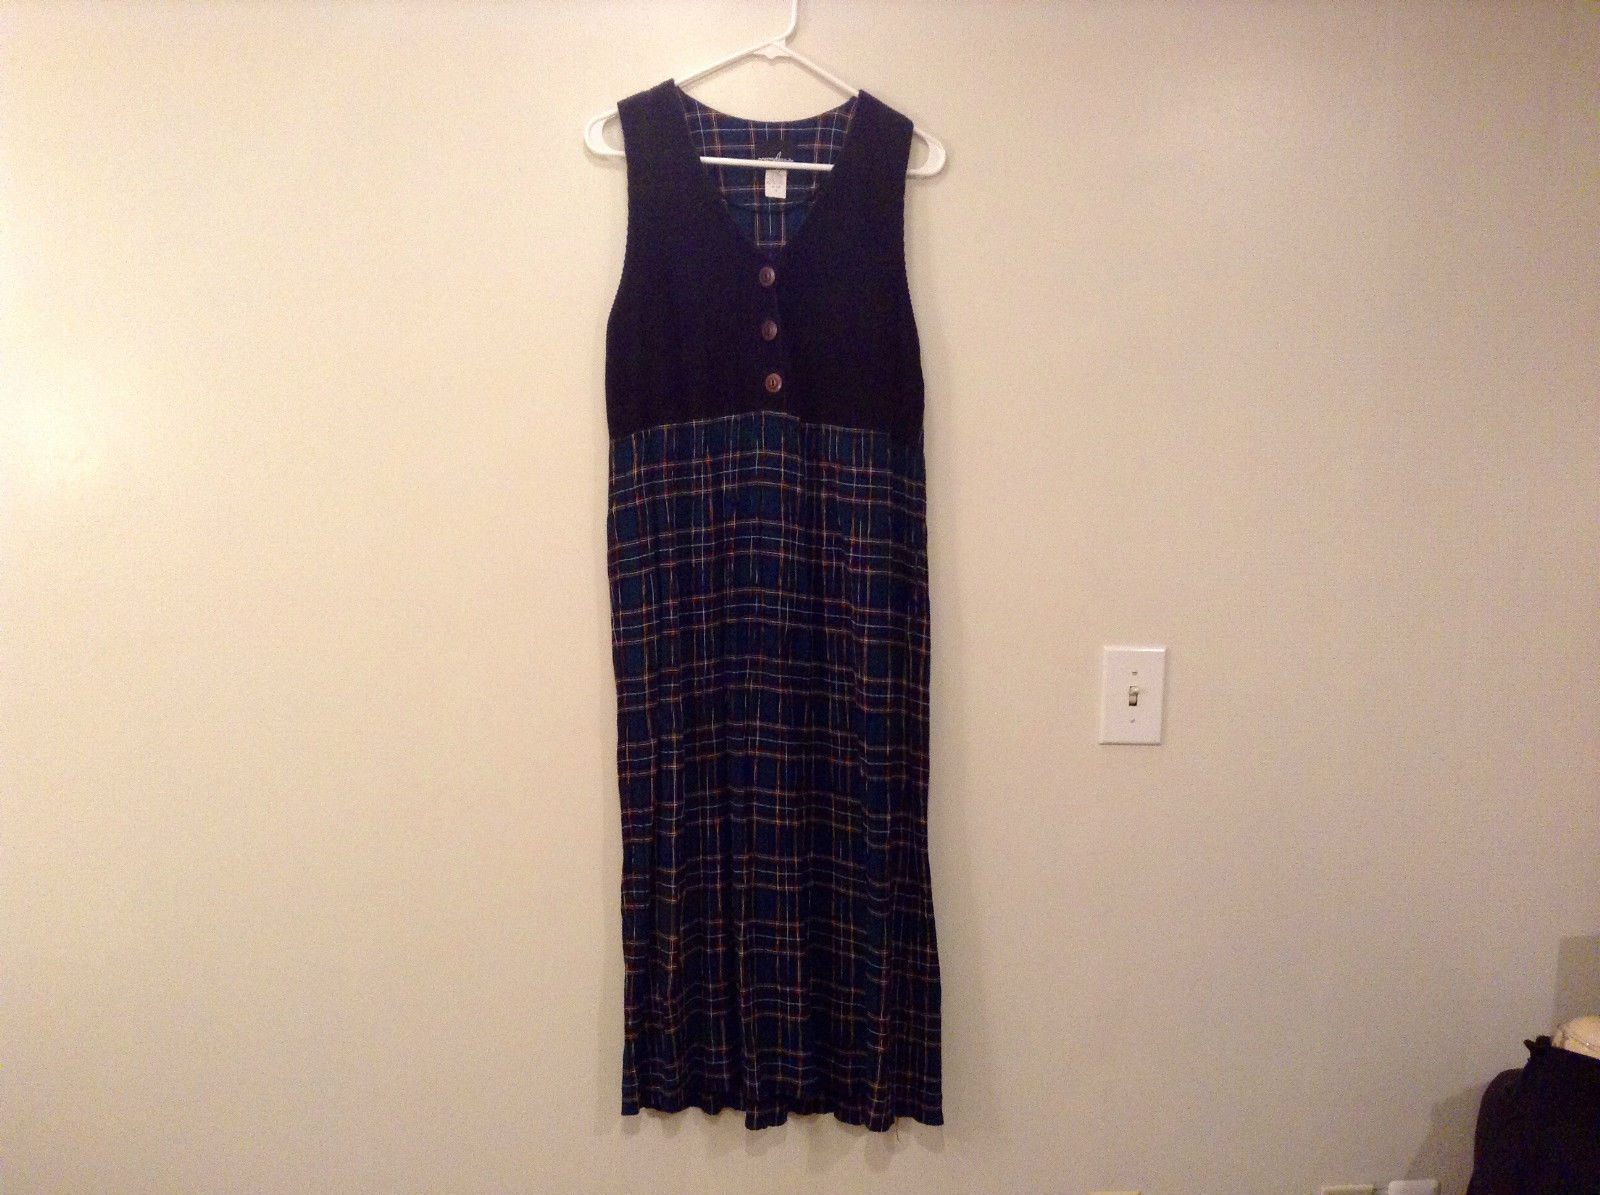 Sleeveless Size 10 Black at Top Teal Plaid Bottom Dress Positive Attitude